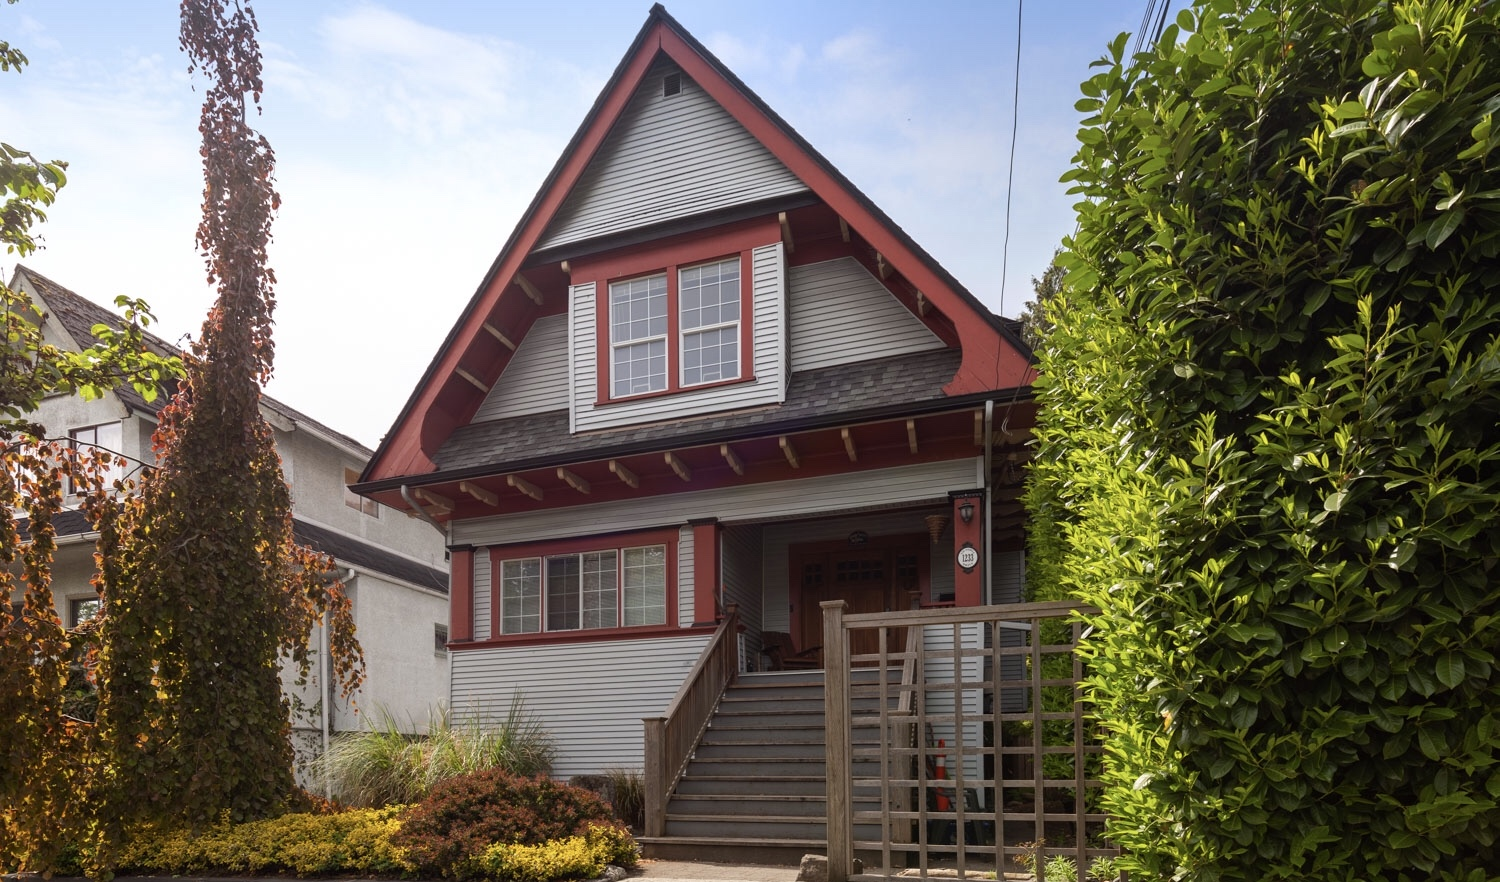 Commercial Drive Character Home - 1233 Victoria Drive